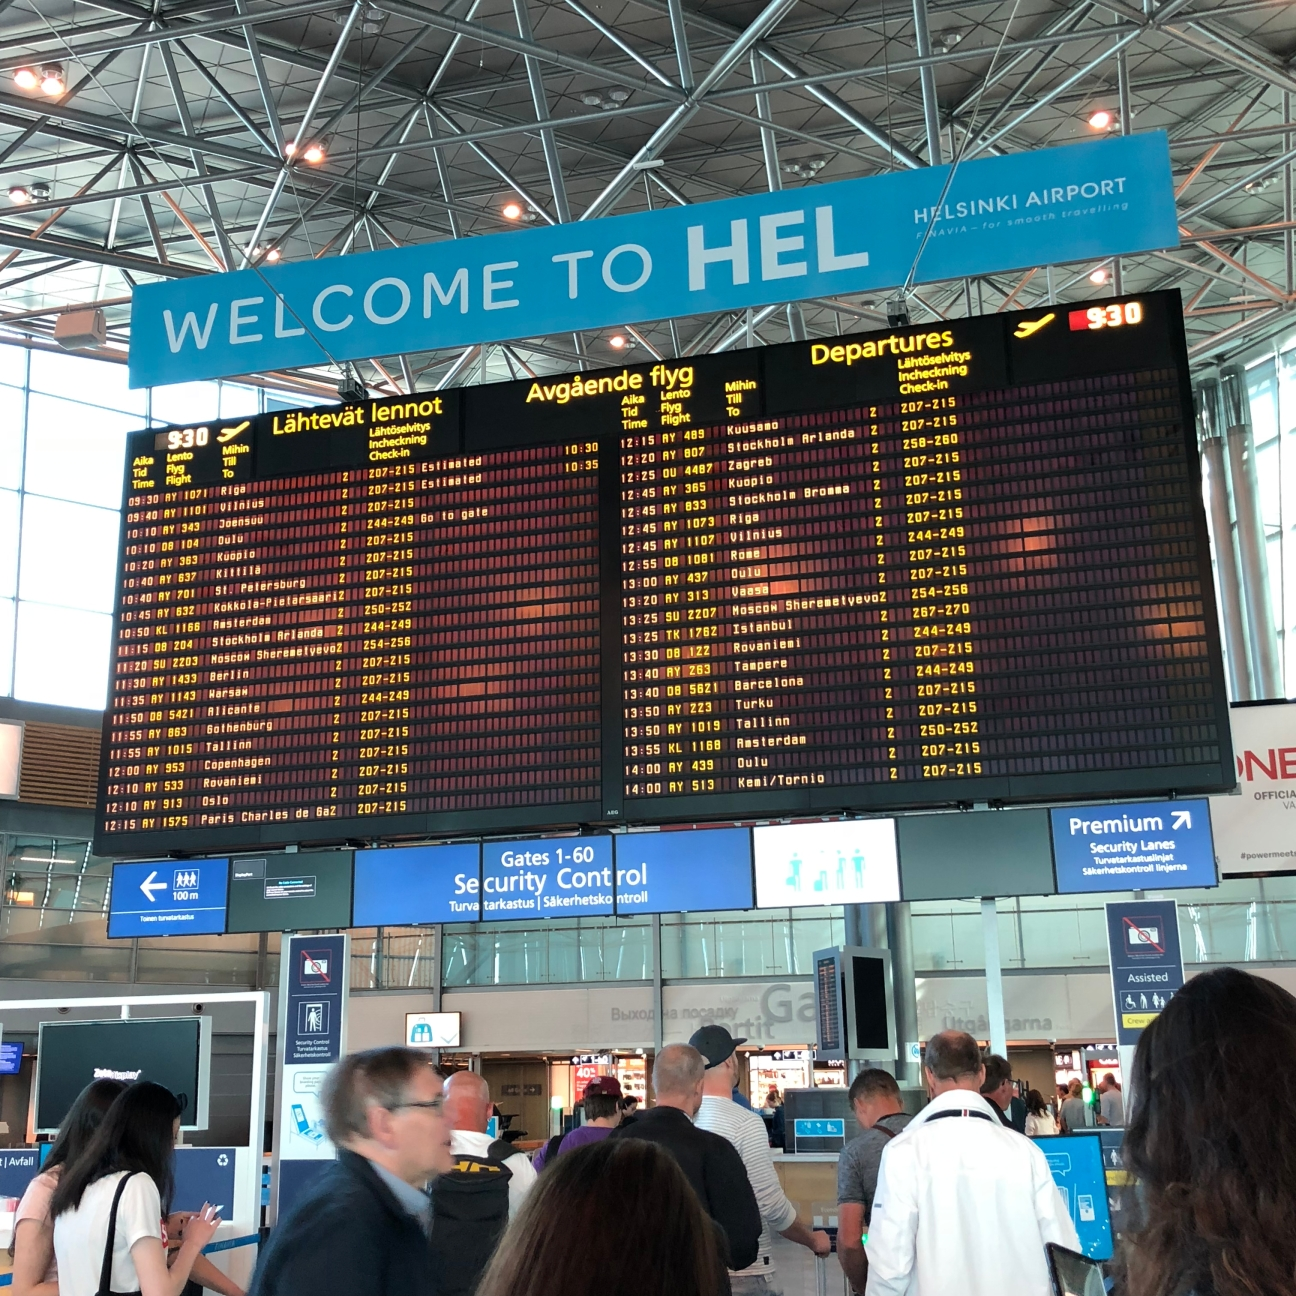 Welcome to HEL (sinki) Airport